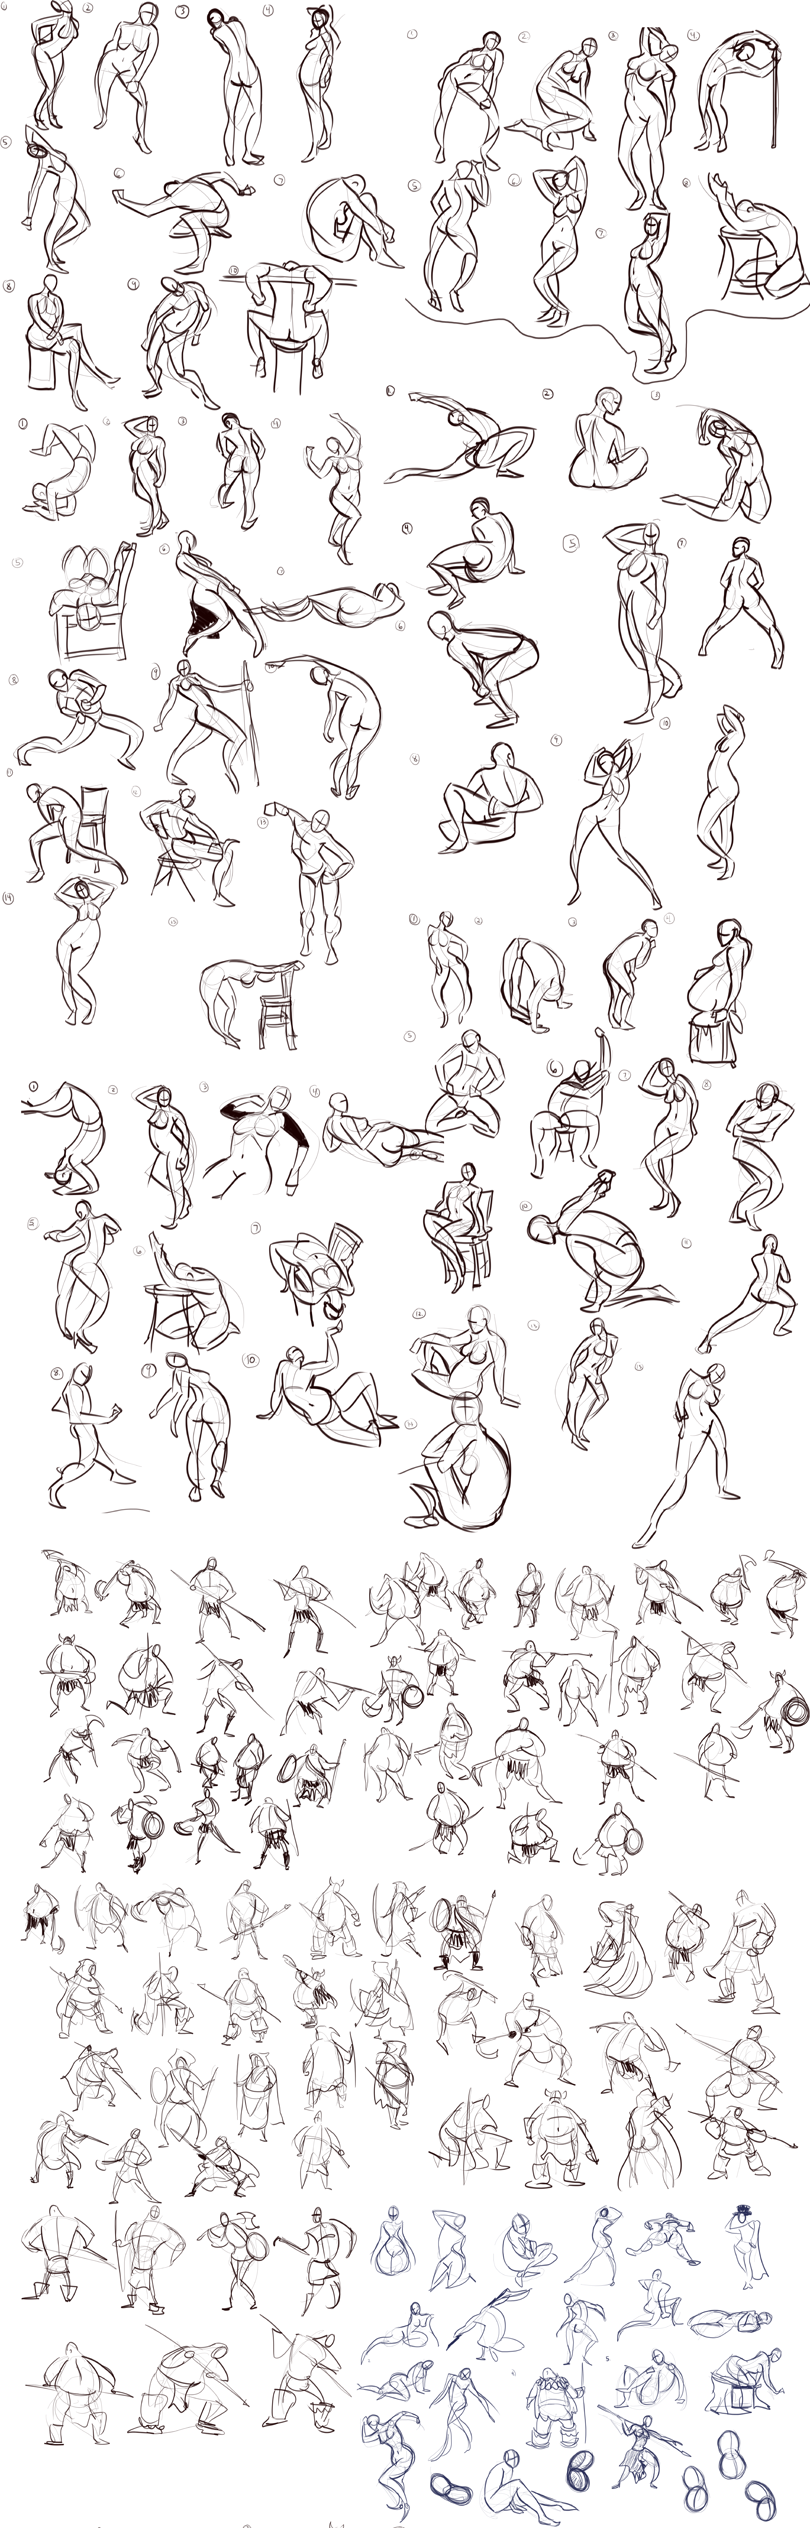 Gesture Sketchdump 1 by Ric-M